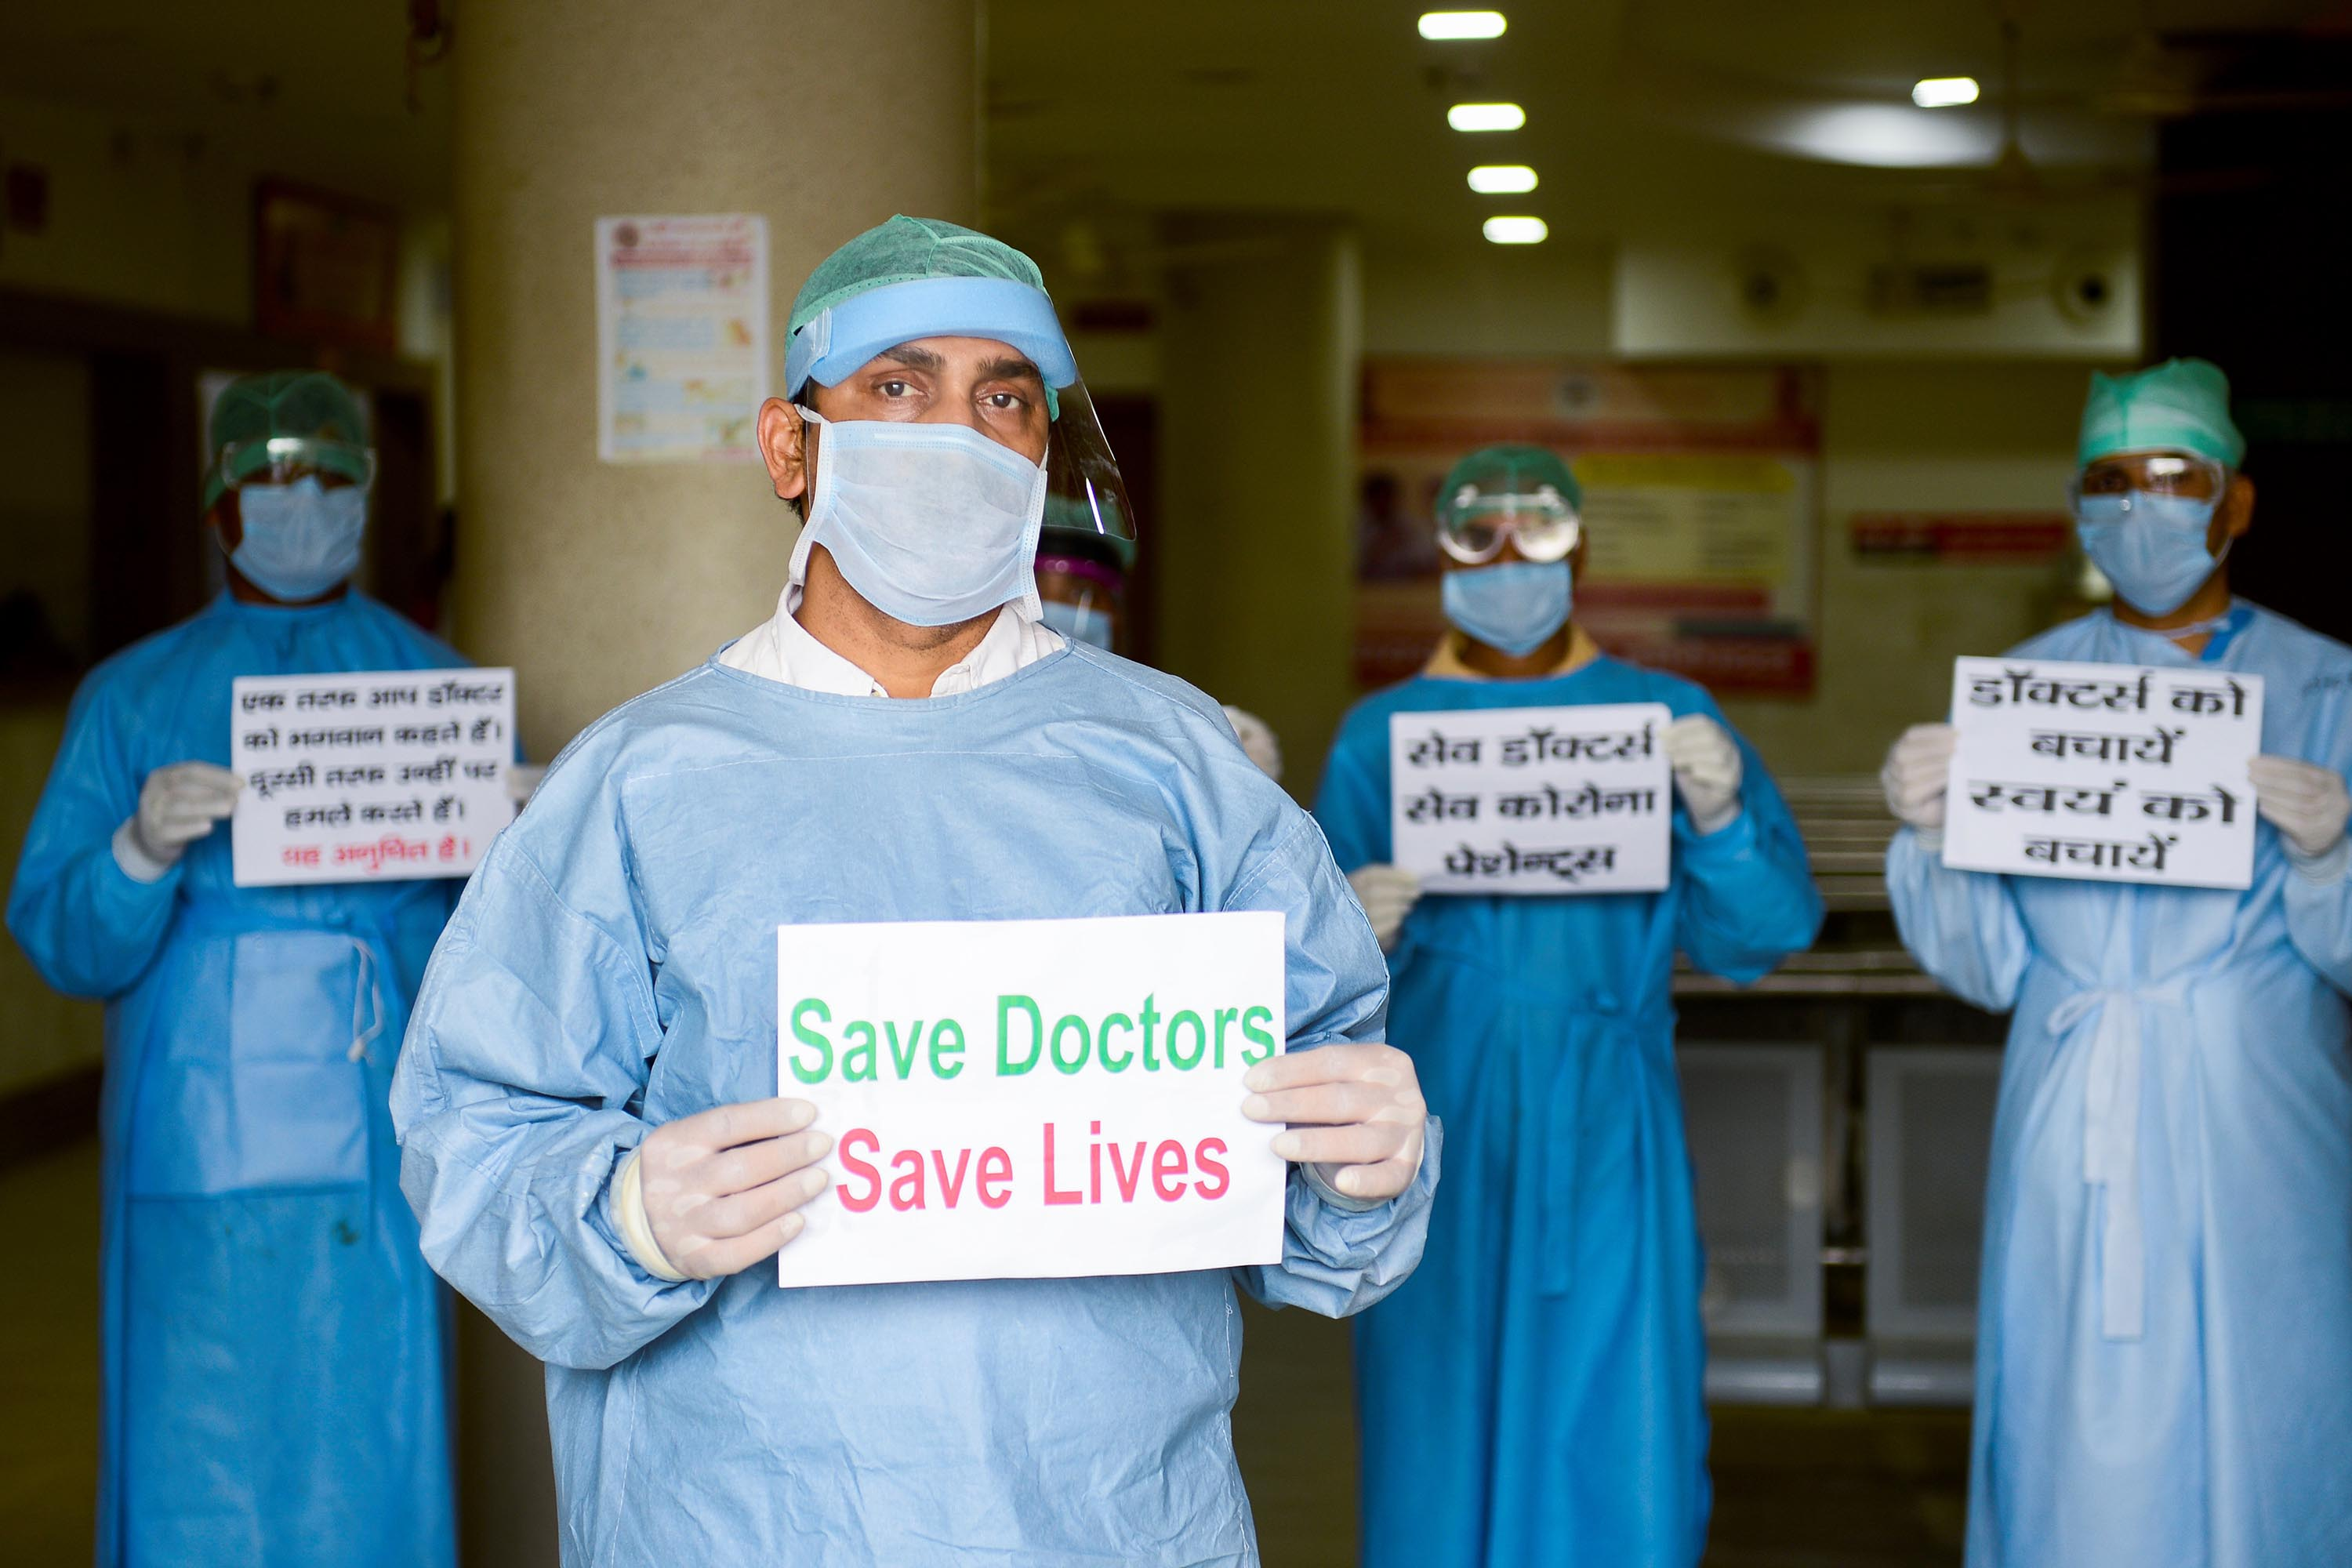 Doctors and medical staff of Narayan Swaroop Hospital in Allahabad hold placards to protest against recent assaults on health workers in India, on April 16.